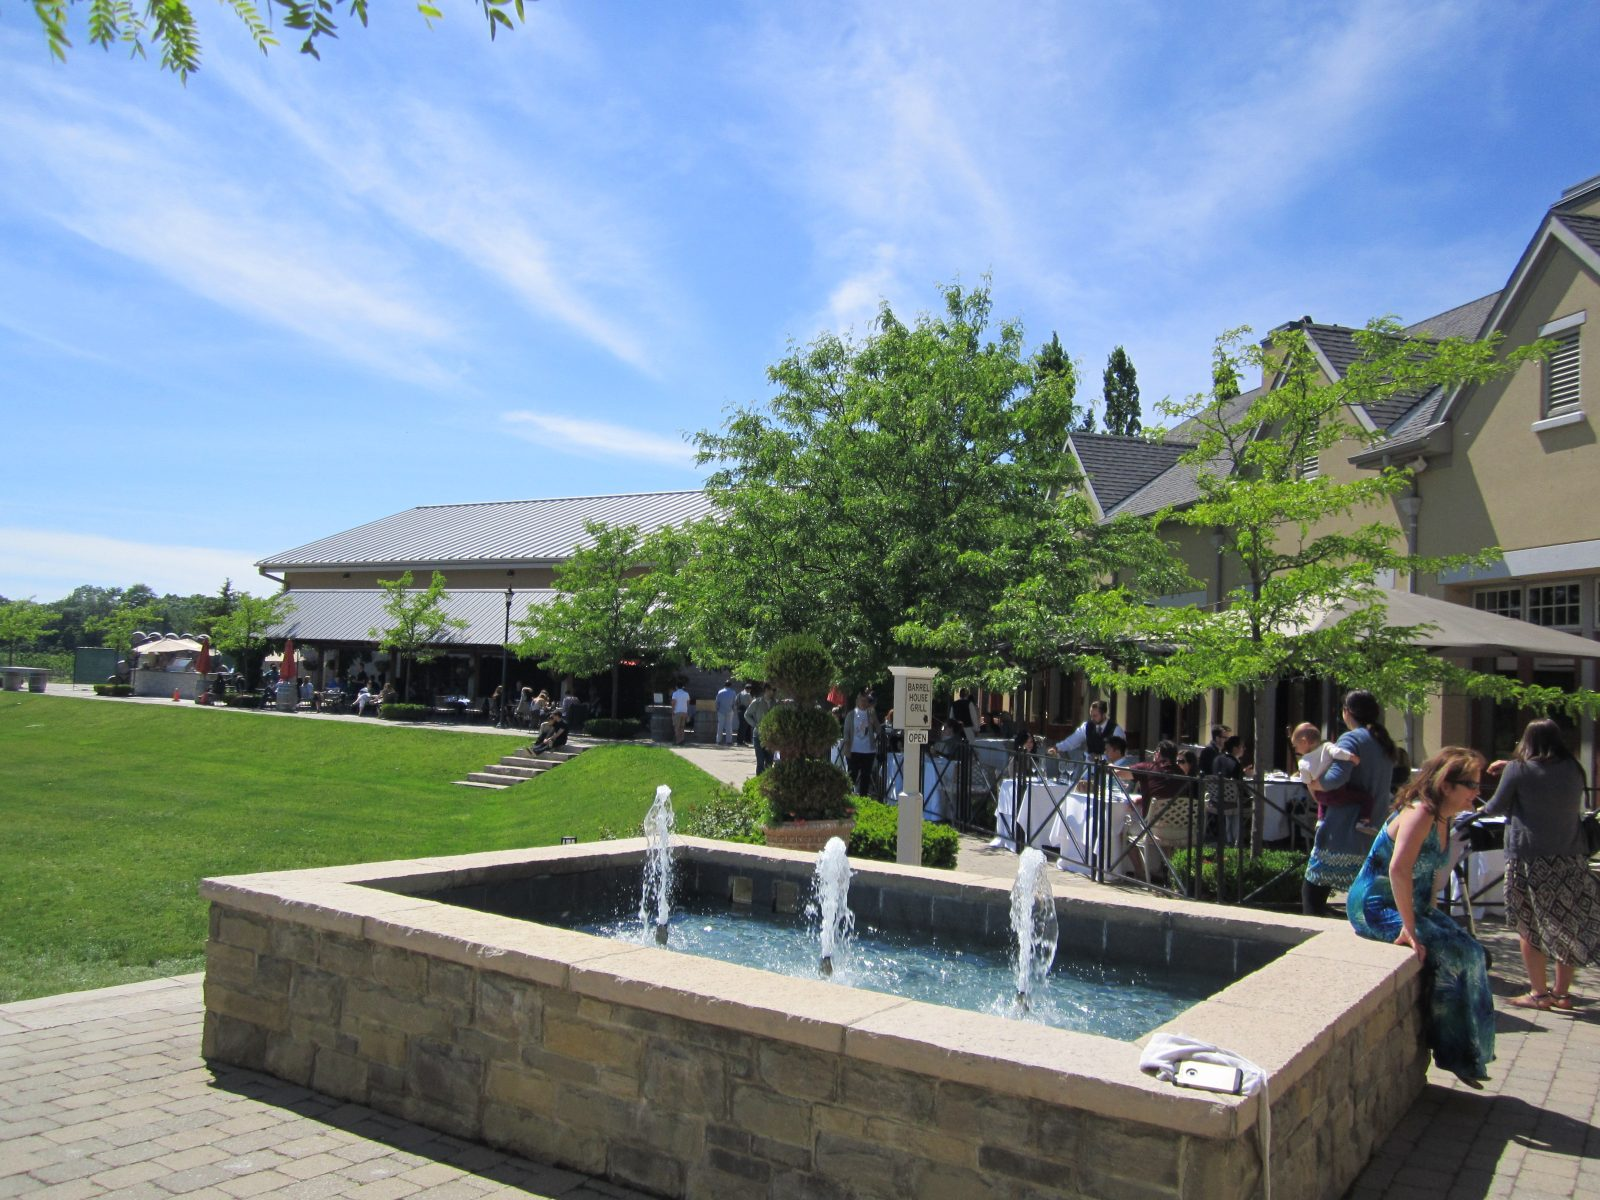 The back patio of Peller Estates hosts many summer events, including the Grill & Chill experience at the outdoor grill.